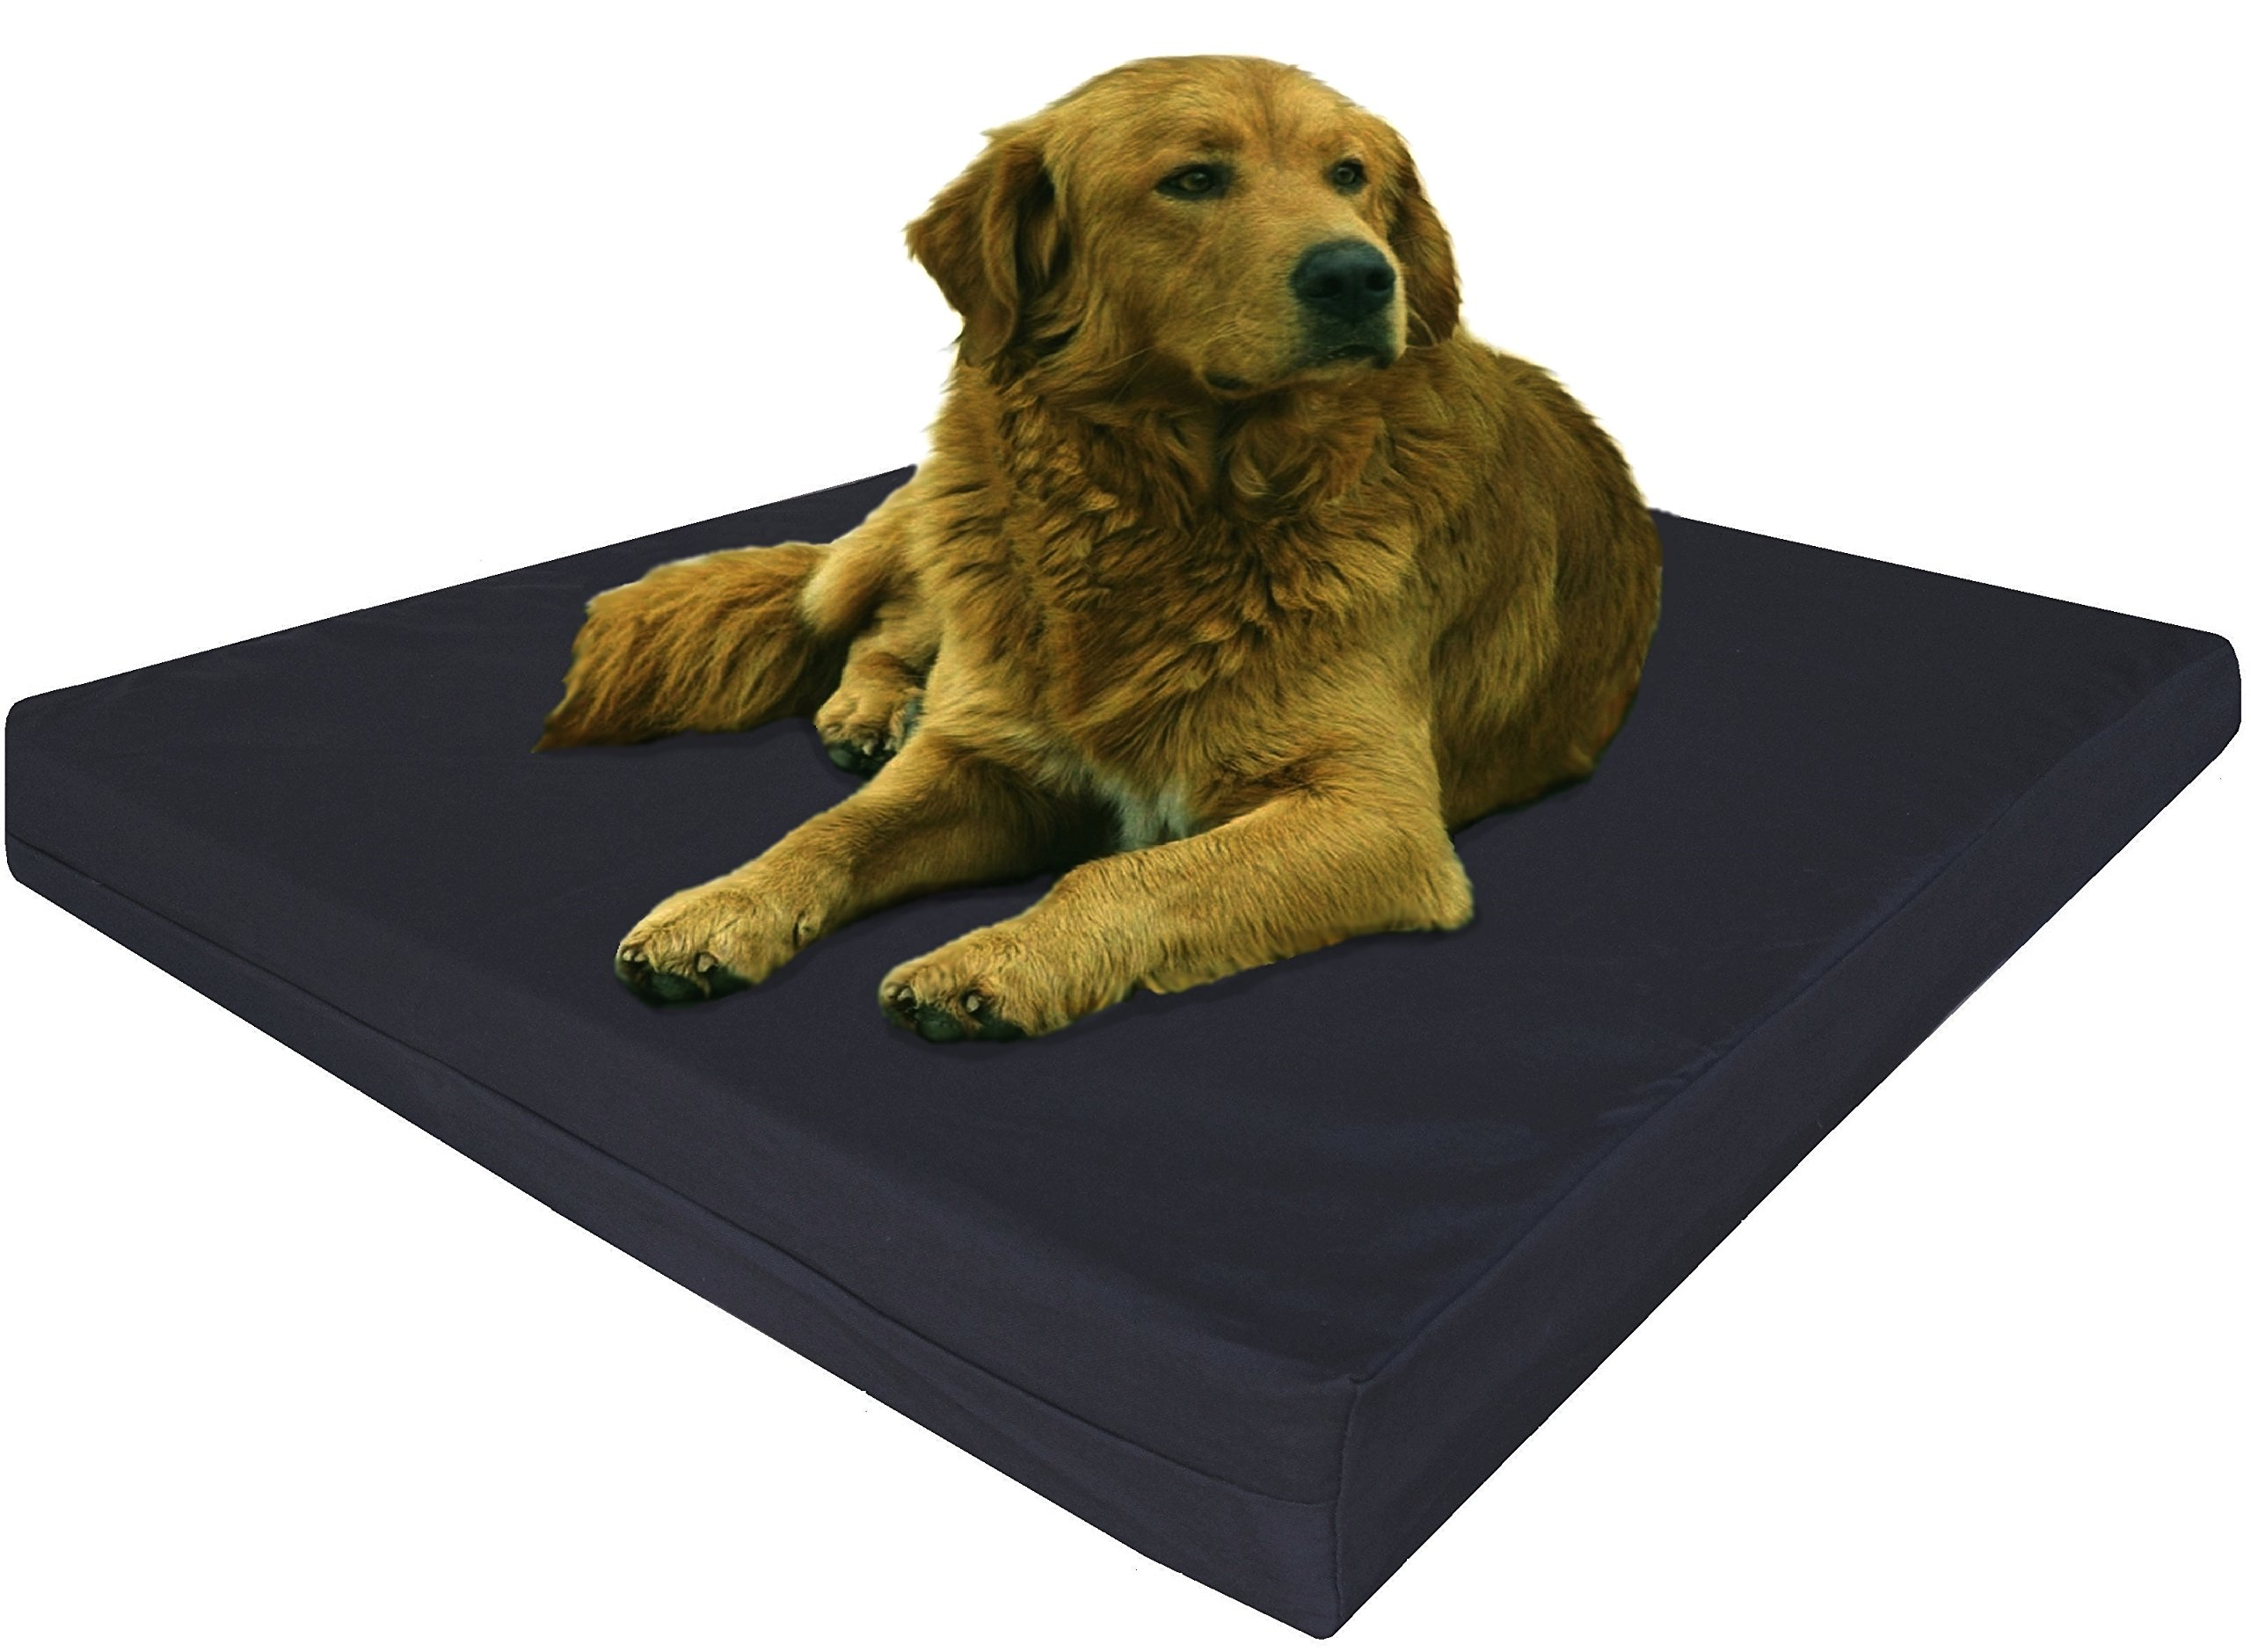 luxurious planet beds bed with from foam dogs for happiness pet to animal sure small medium dog memory make best your howls